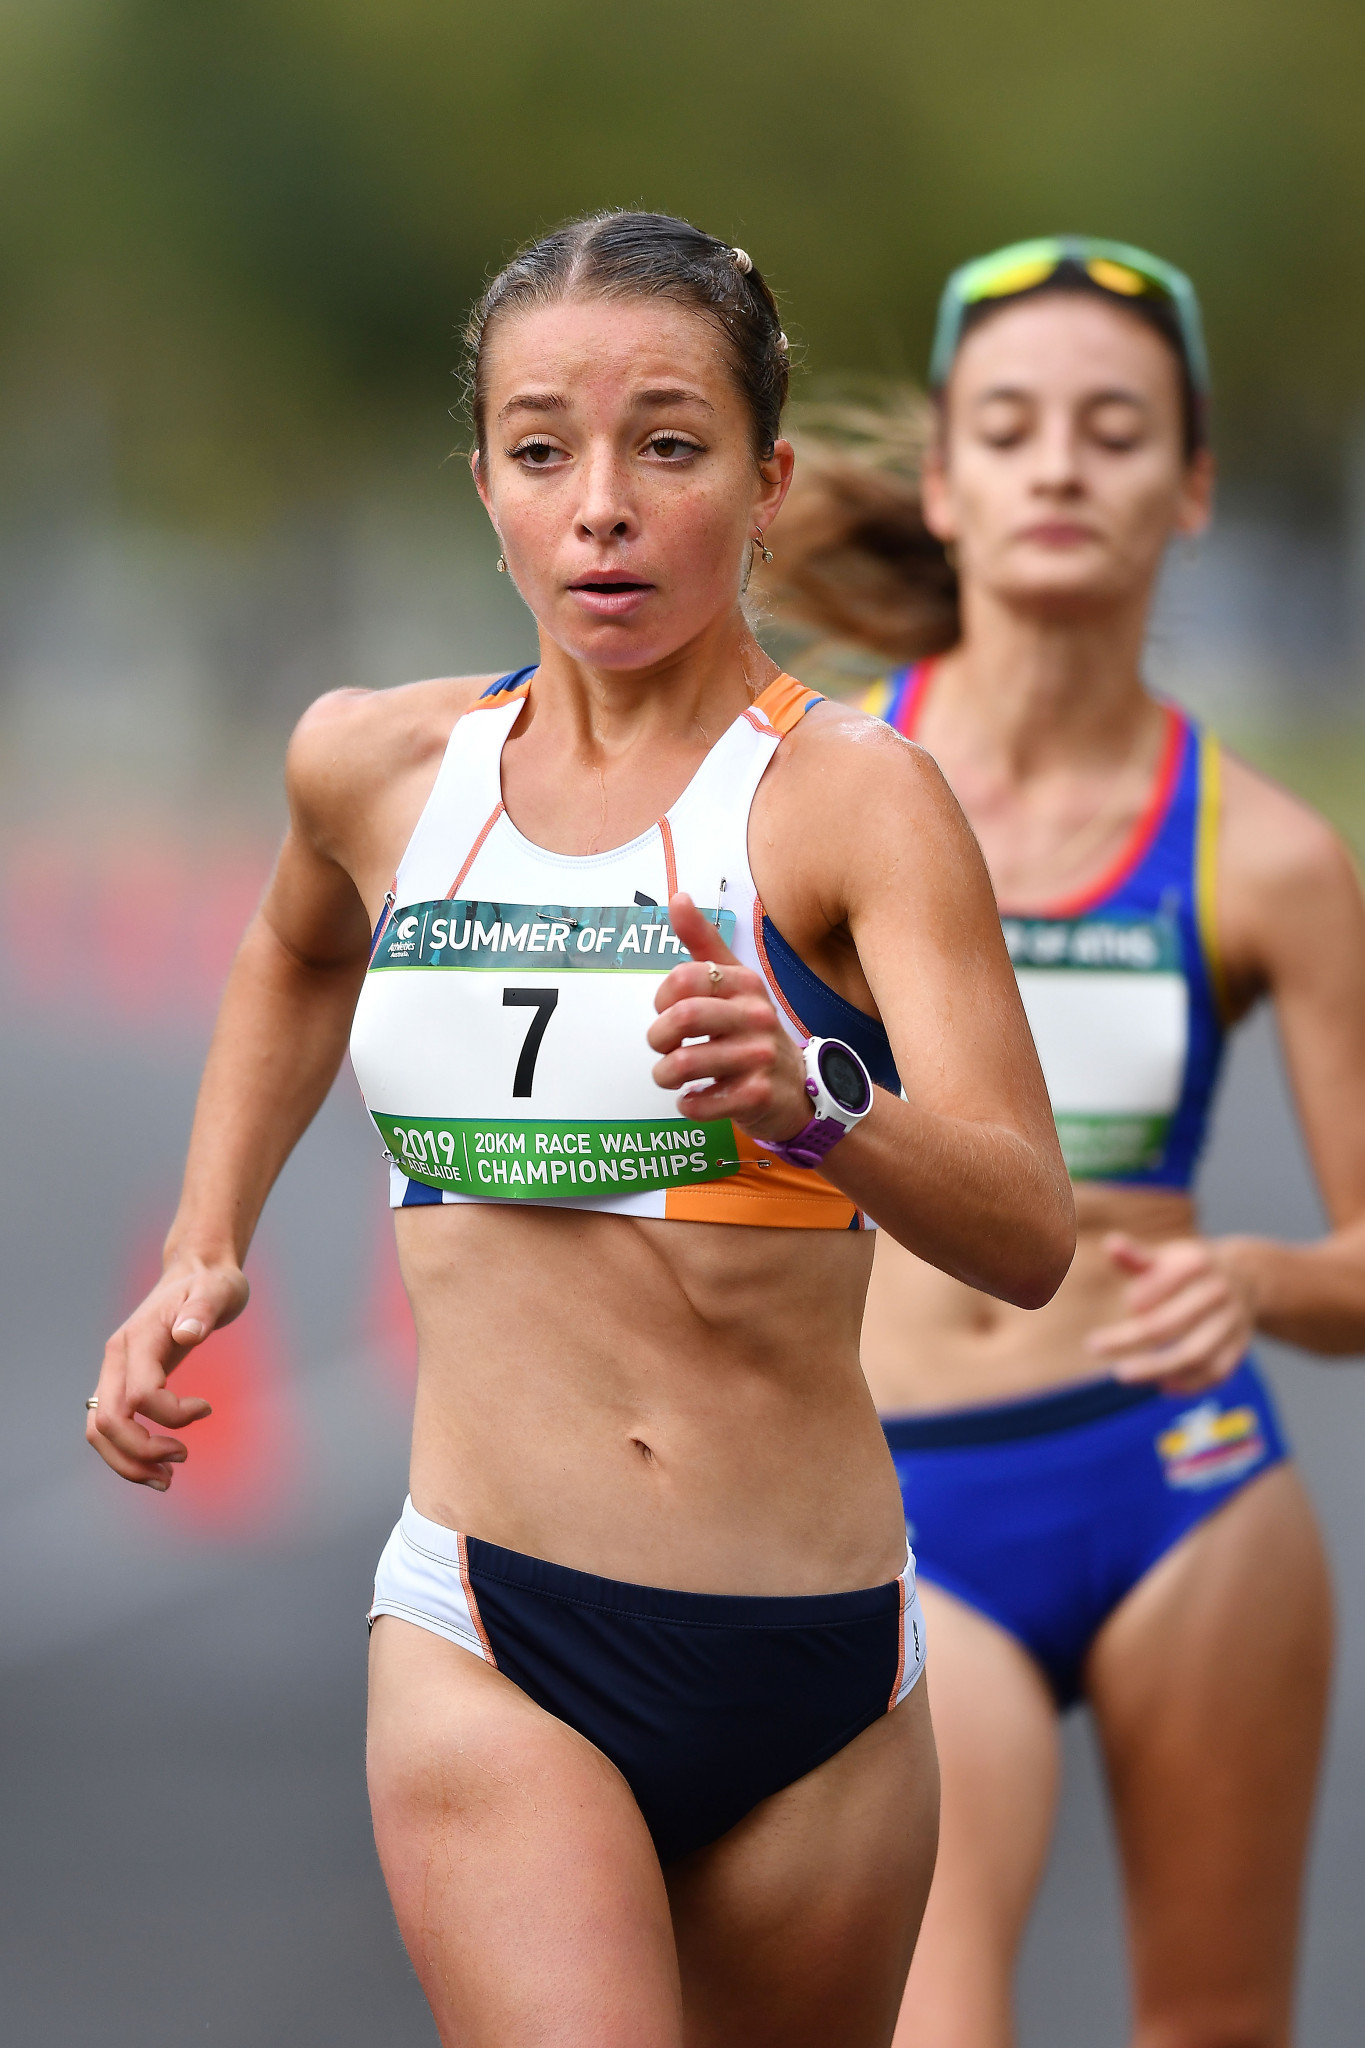 Commonwealth Games 20 kilometres racewalk champion Jemima Montag has been named in the Australian team for the 2019 Summer Universiade in Naples ©Getty Images